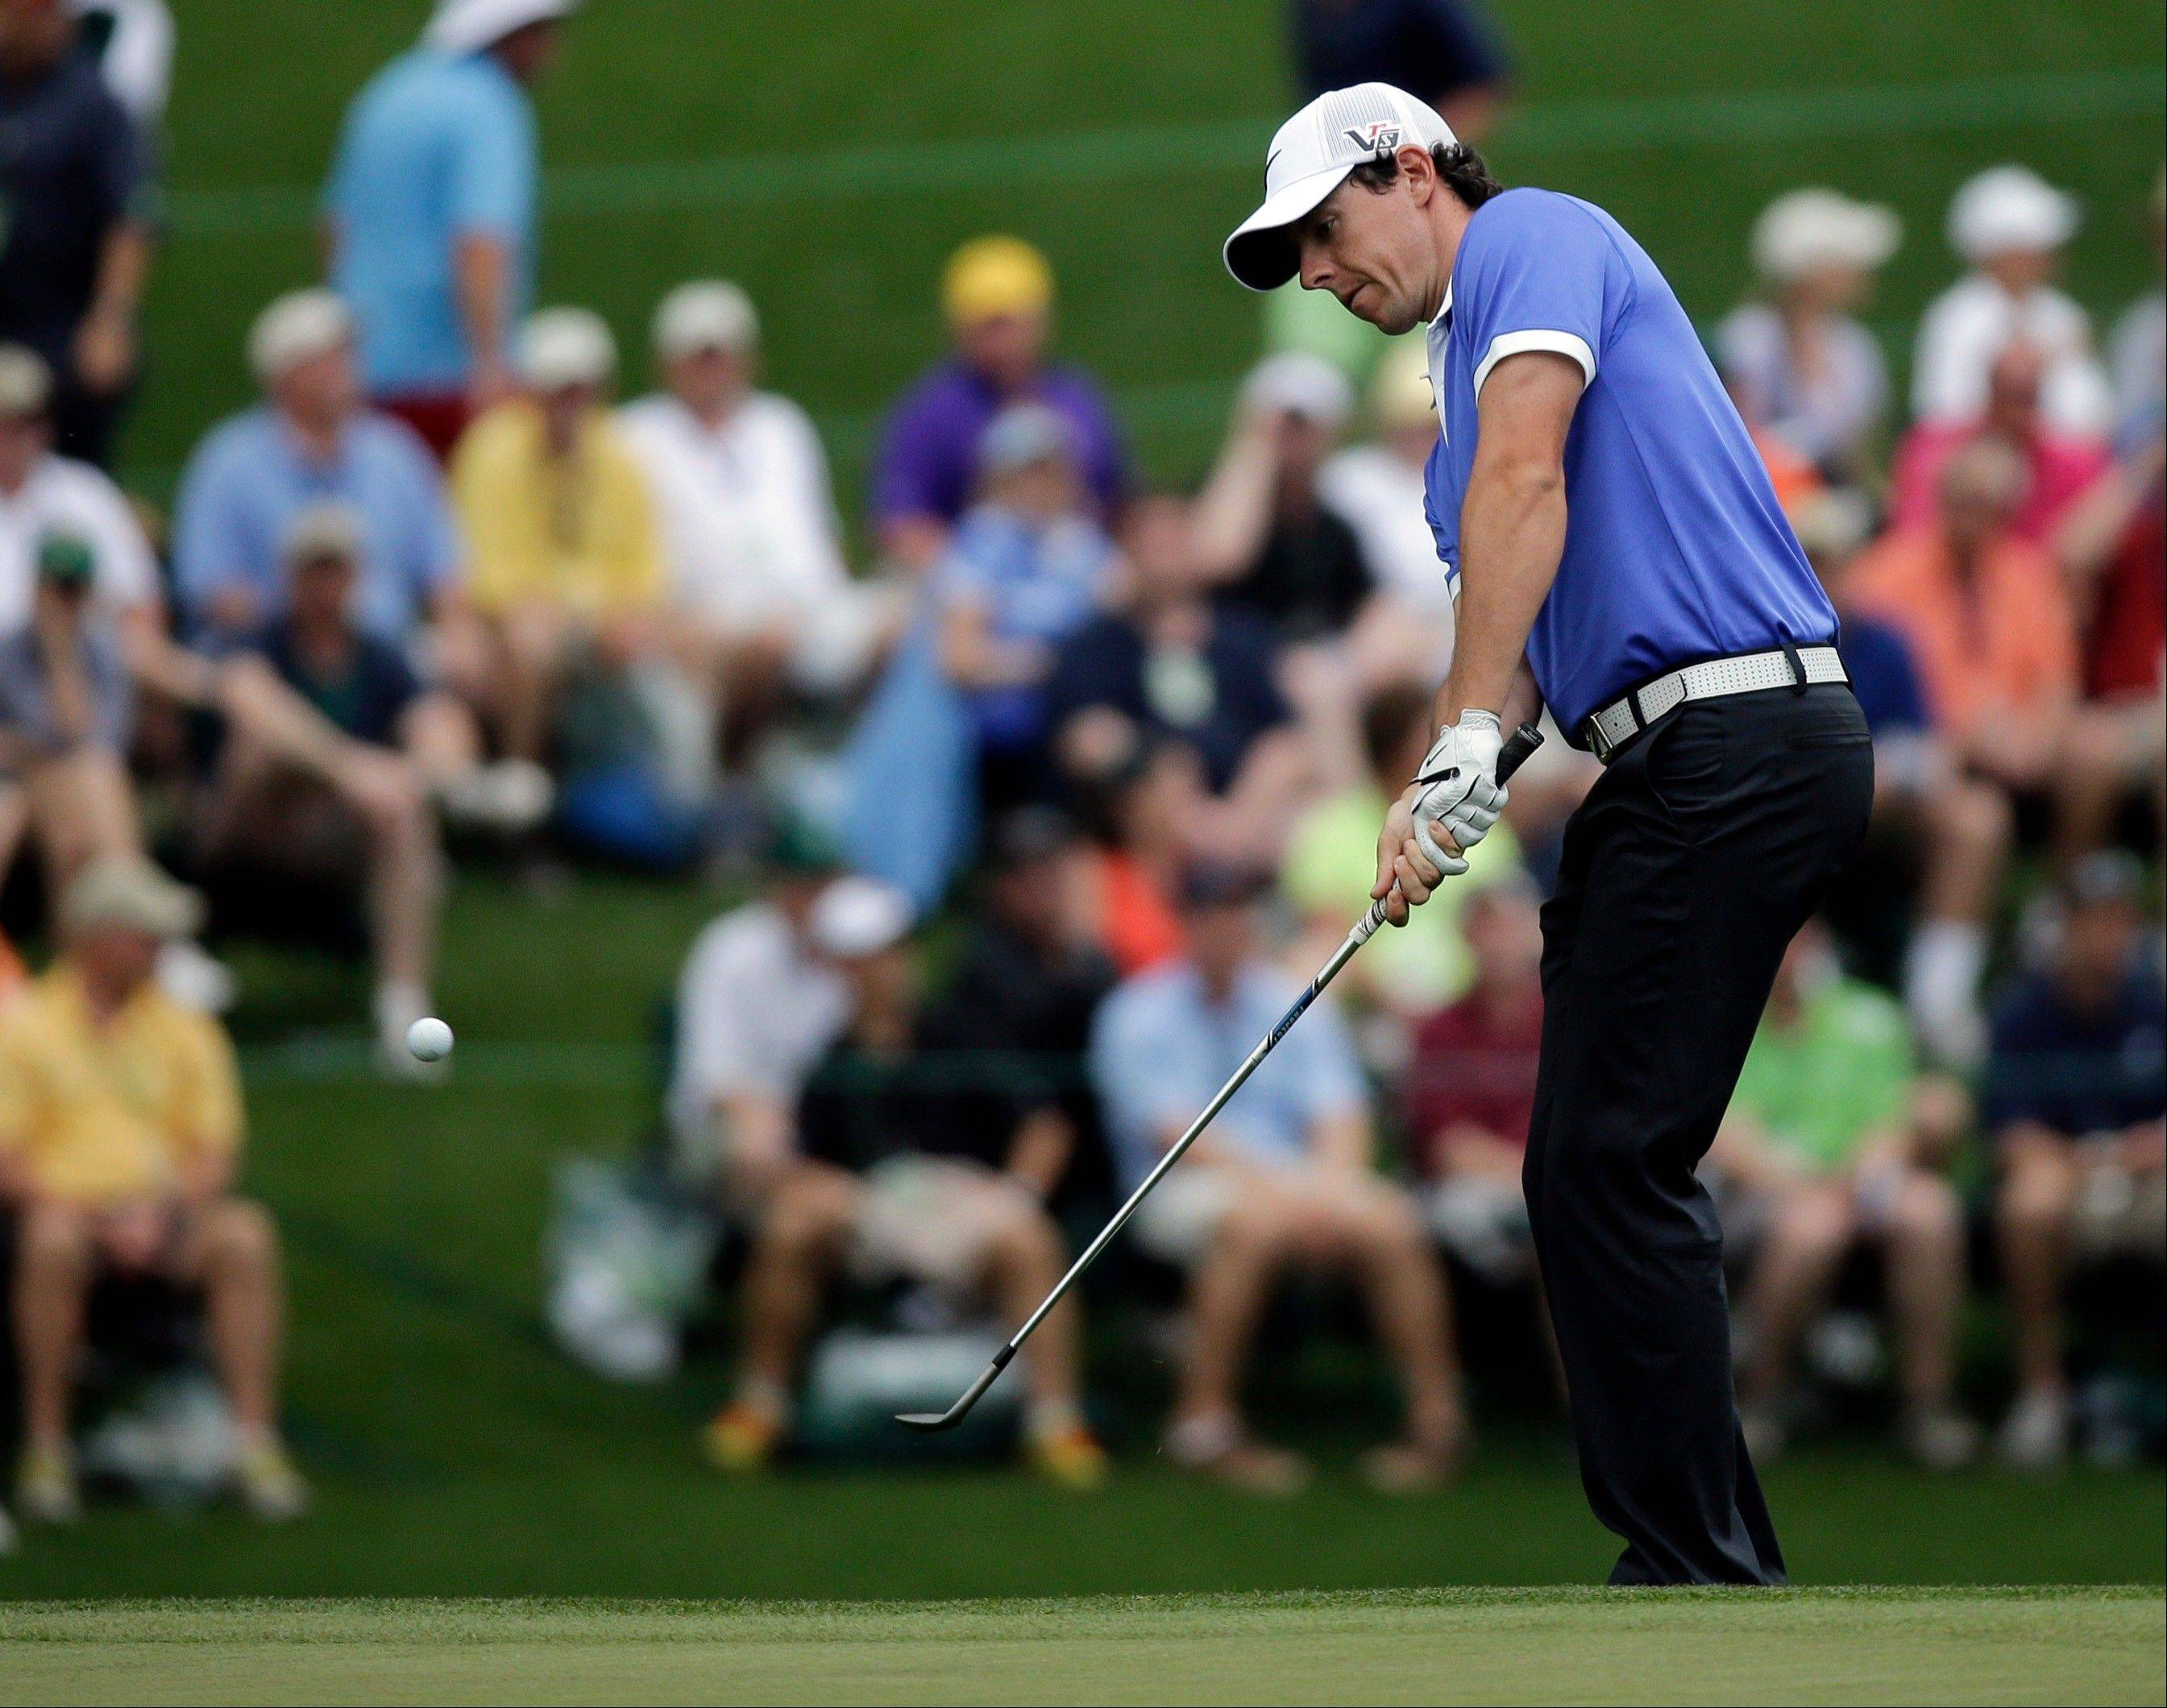 Rory McIlroy, of Northern Ireland, chips to the 15th green during the first round of the Masters golf tournament Thursday, April 11, 2013, in Augusta, Ga.